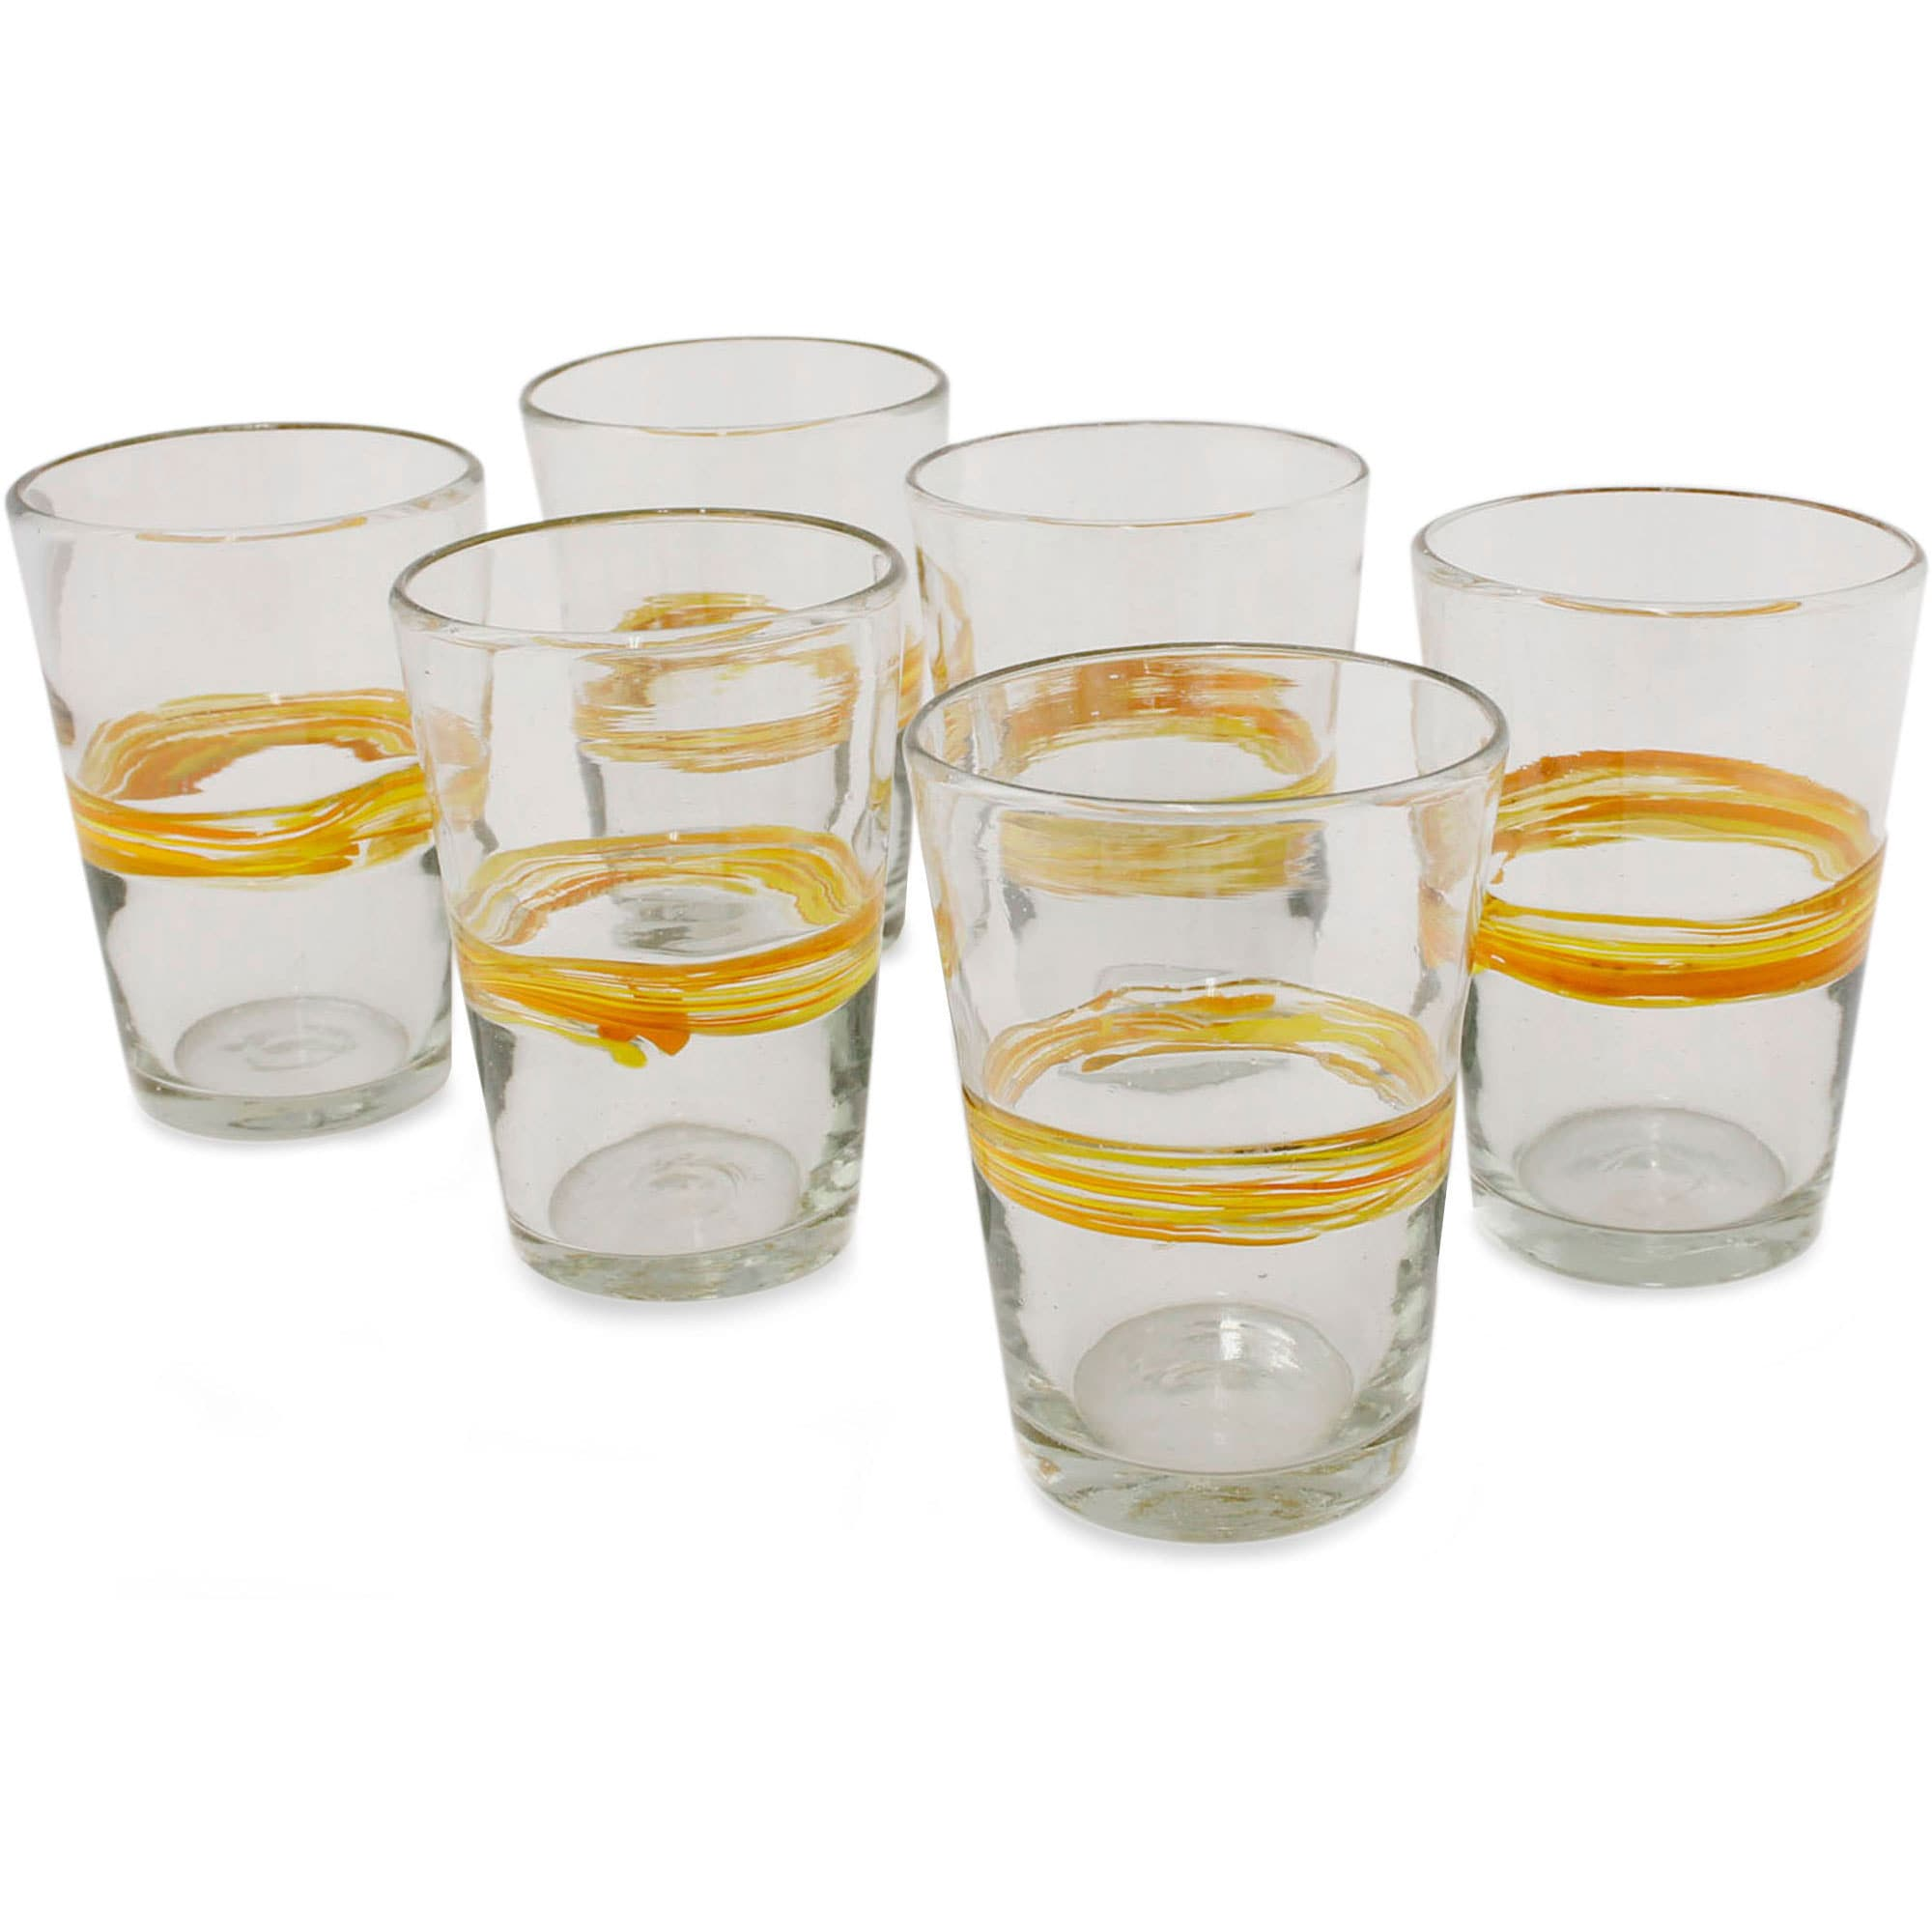 Set of 6 Blown Glass 'Ribbon of Sunshine' Tumbler Glasses (Mexico)